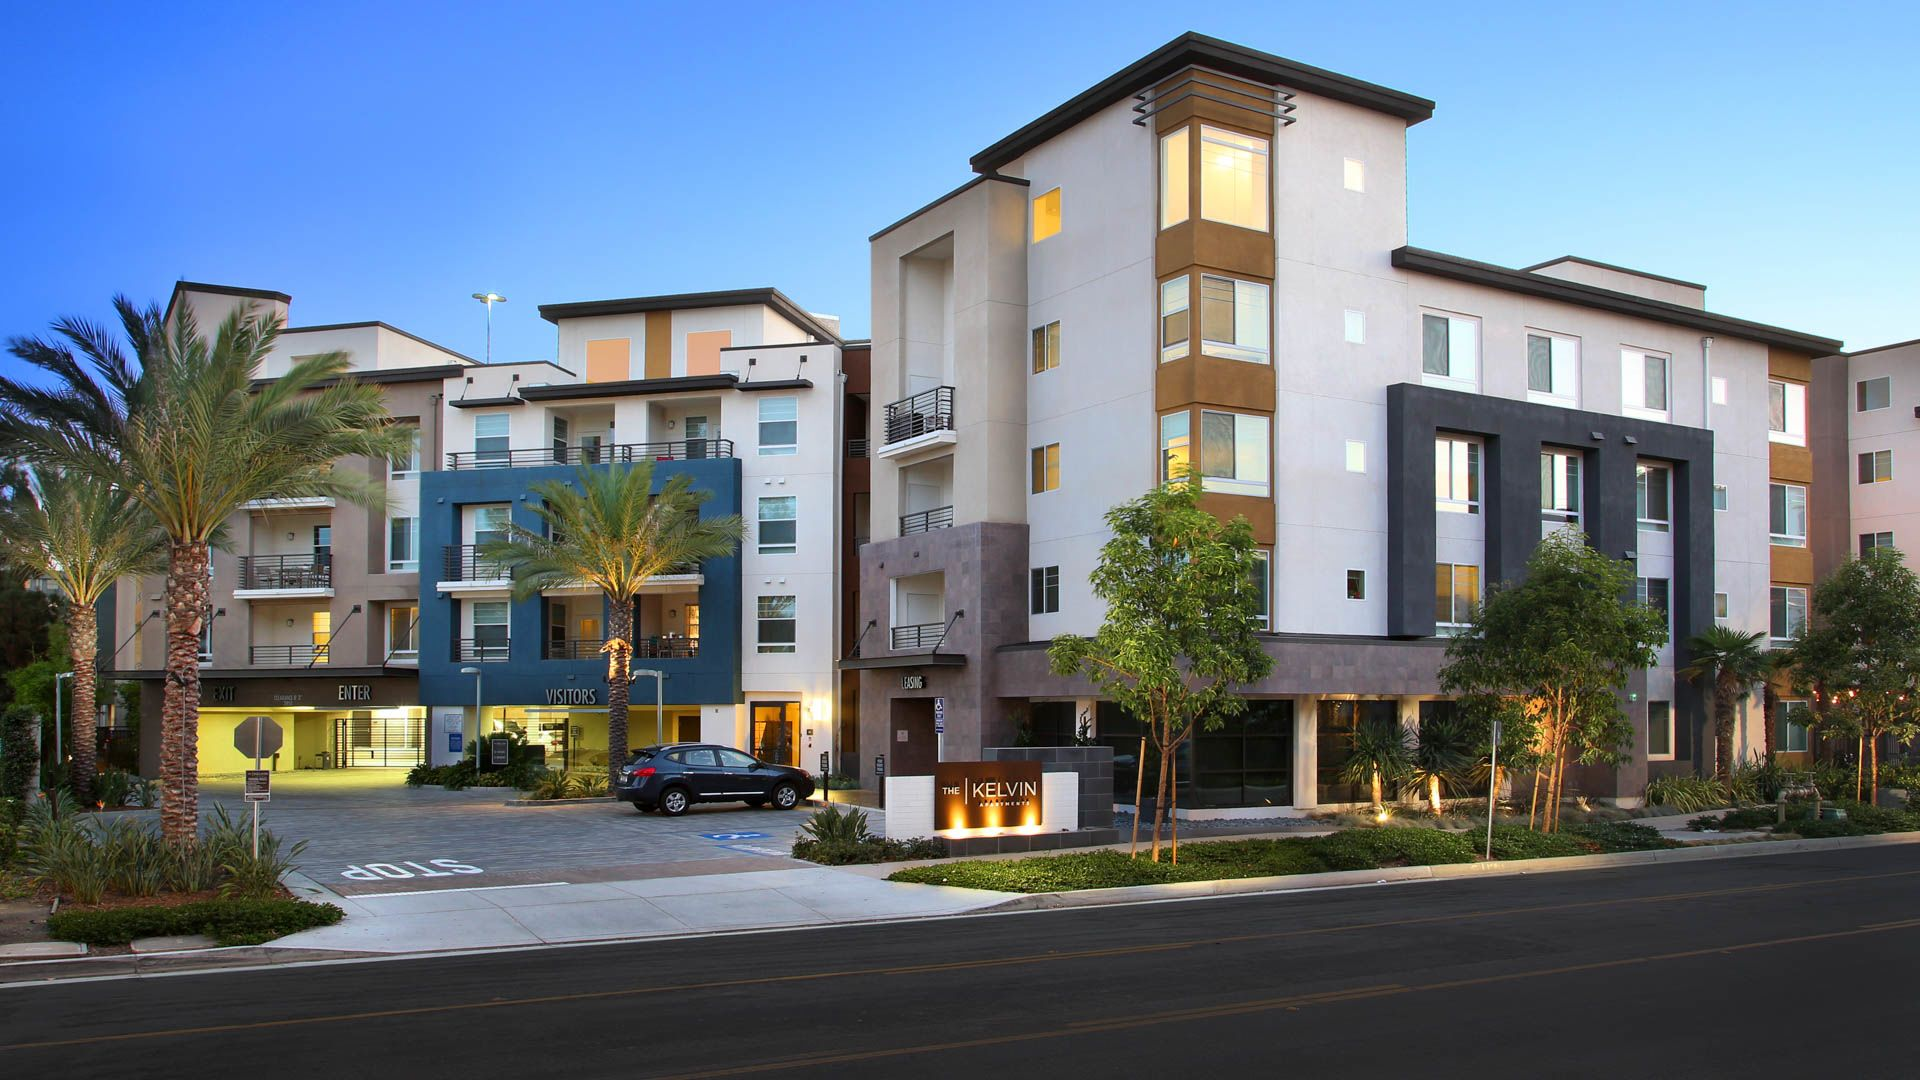 Irvine Apartments San Diego